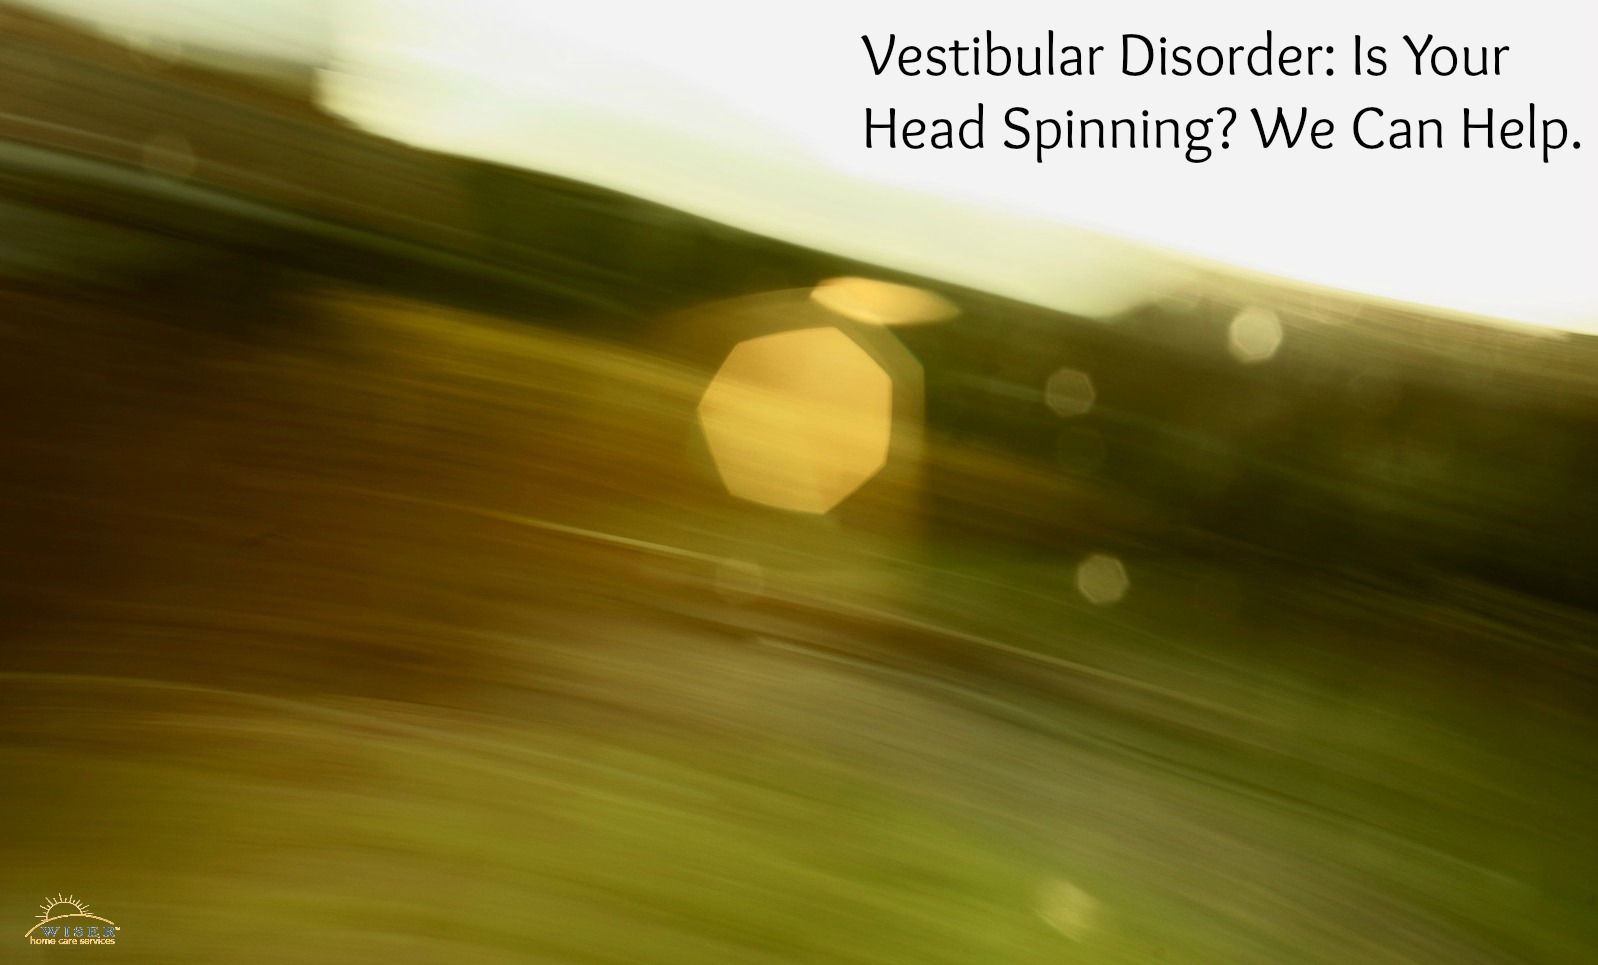 A Vestibular Disorder is characterized by symptoms such as dizziness, vertigo and disequilibrium. Fortunately, with treatment the effects can be lessened.